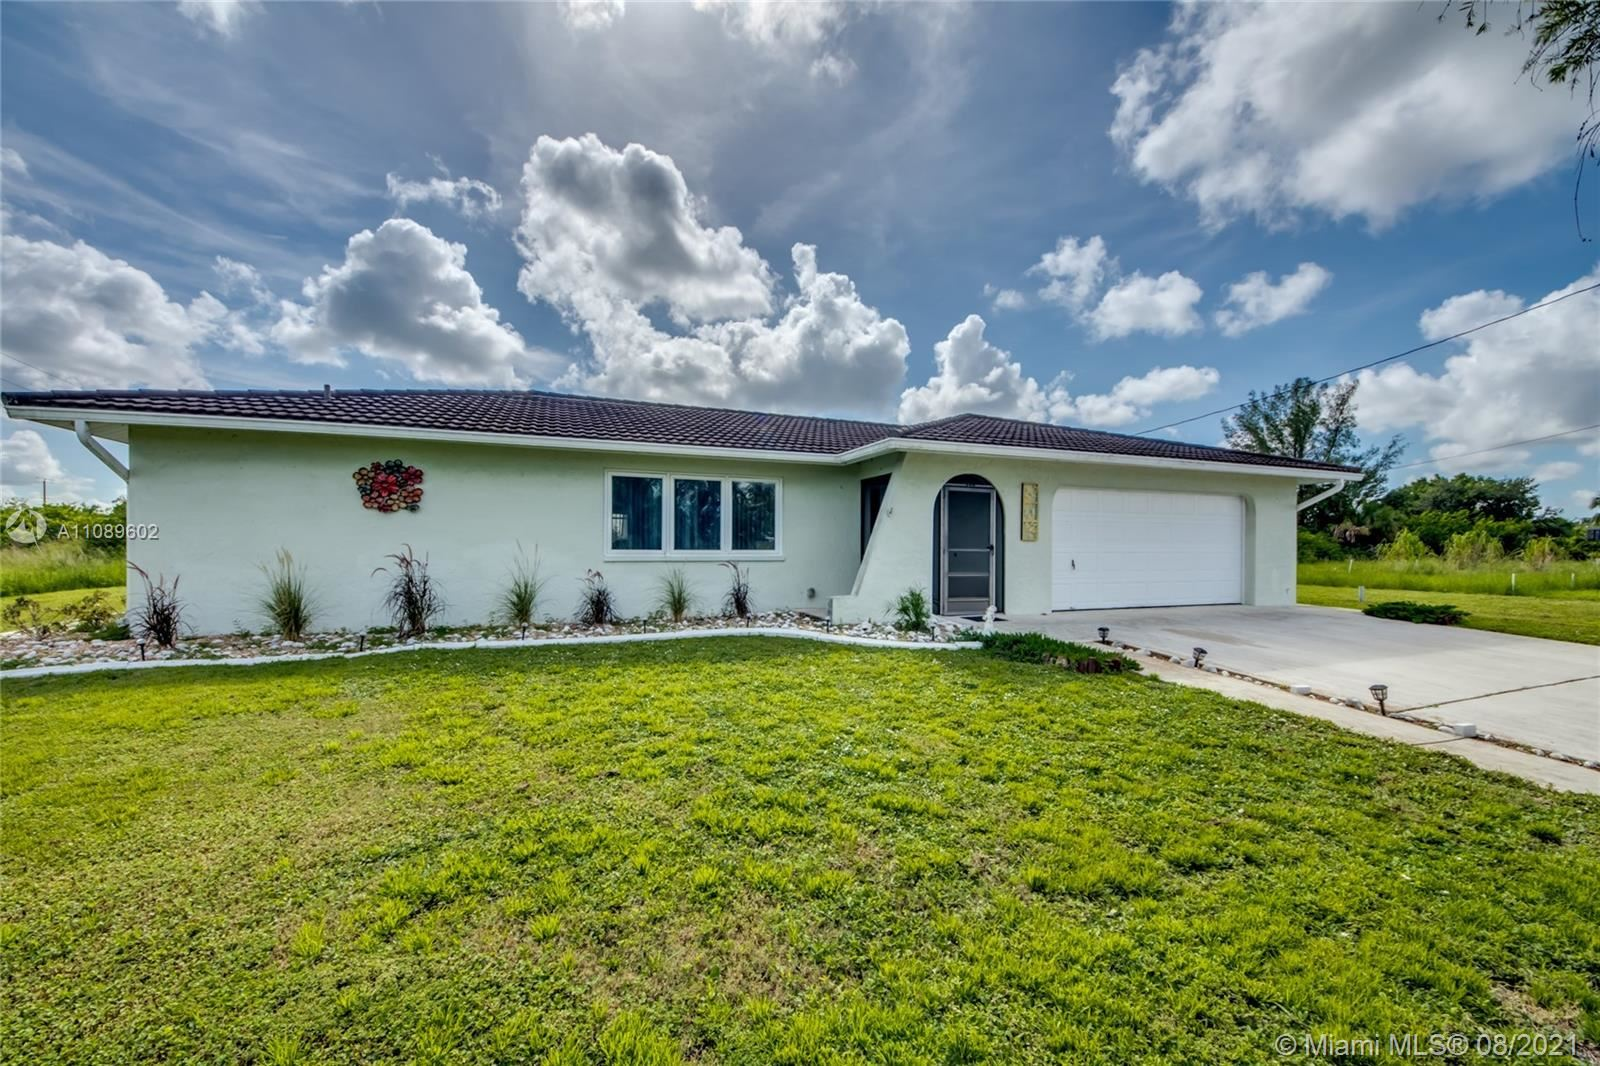 721 NW 3rd Place, Cape Coral, FL 33993 - #: A11089602